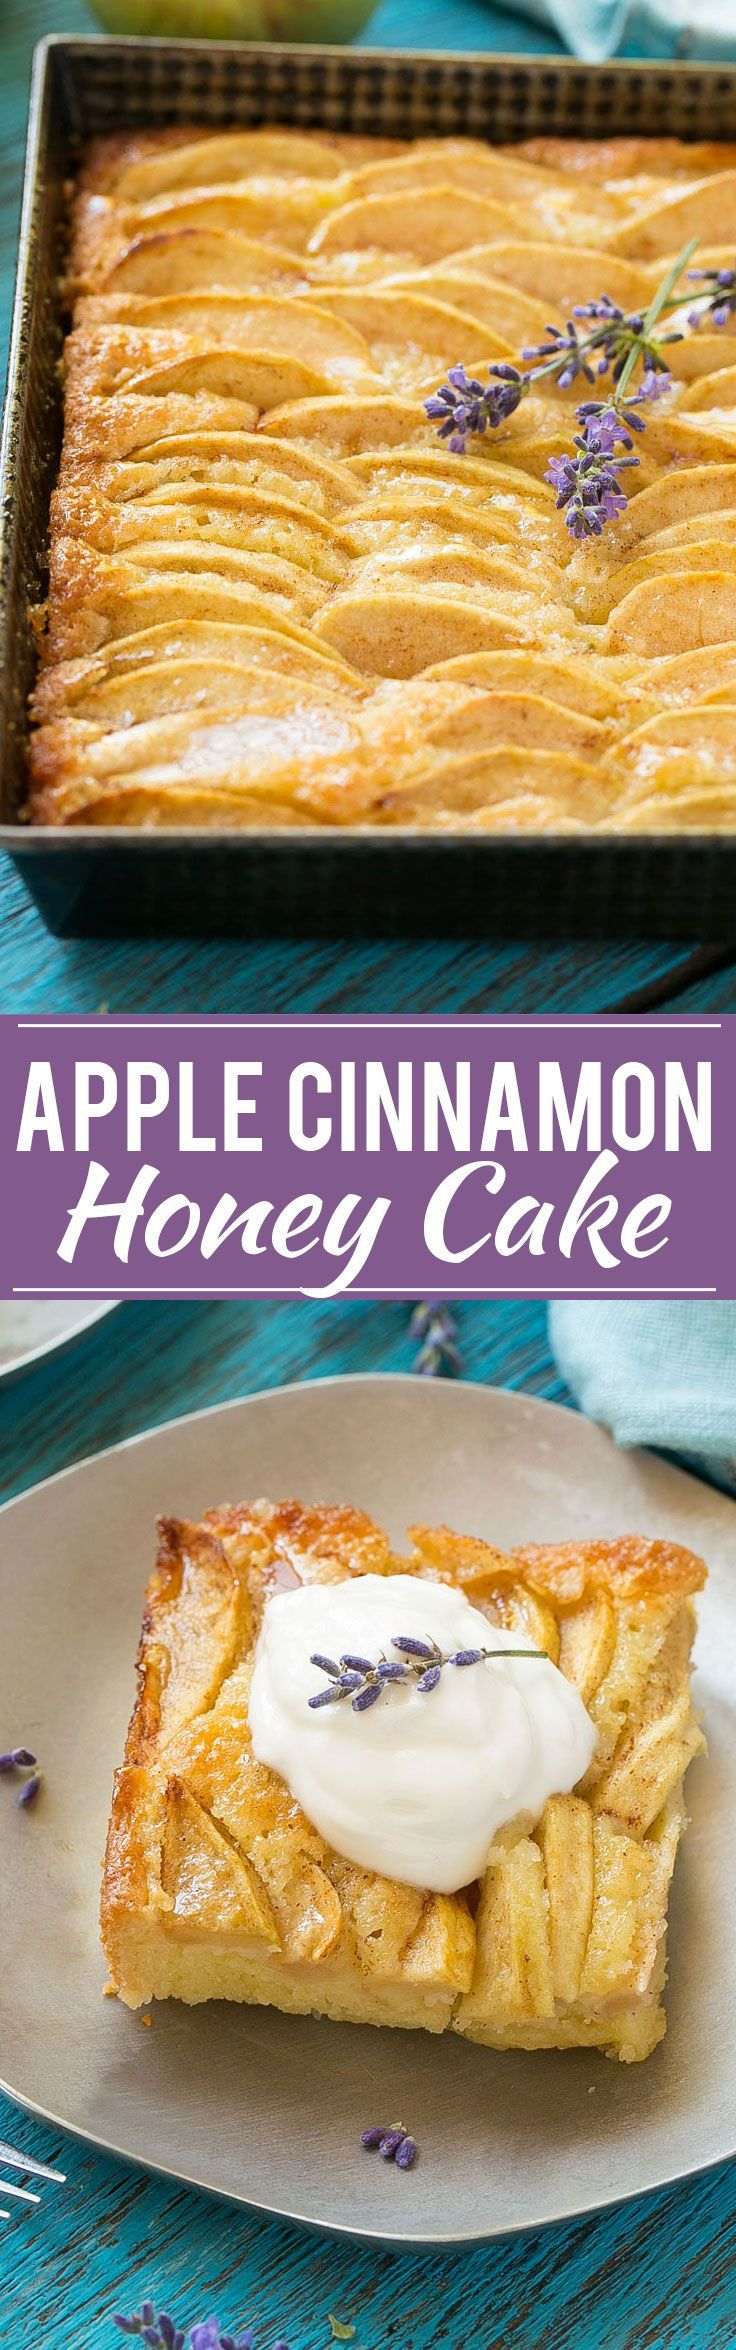 A recipe for a buttery cake full of cinnamon sugar apples and topped with honey.